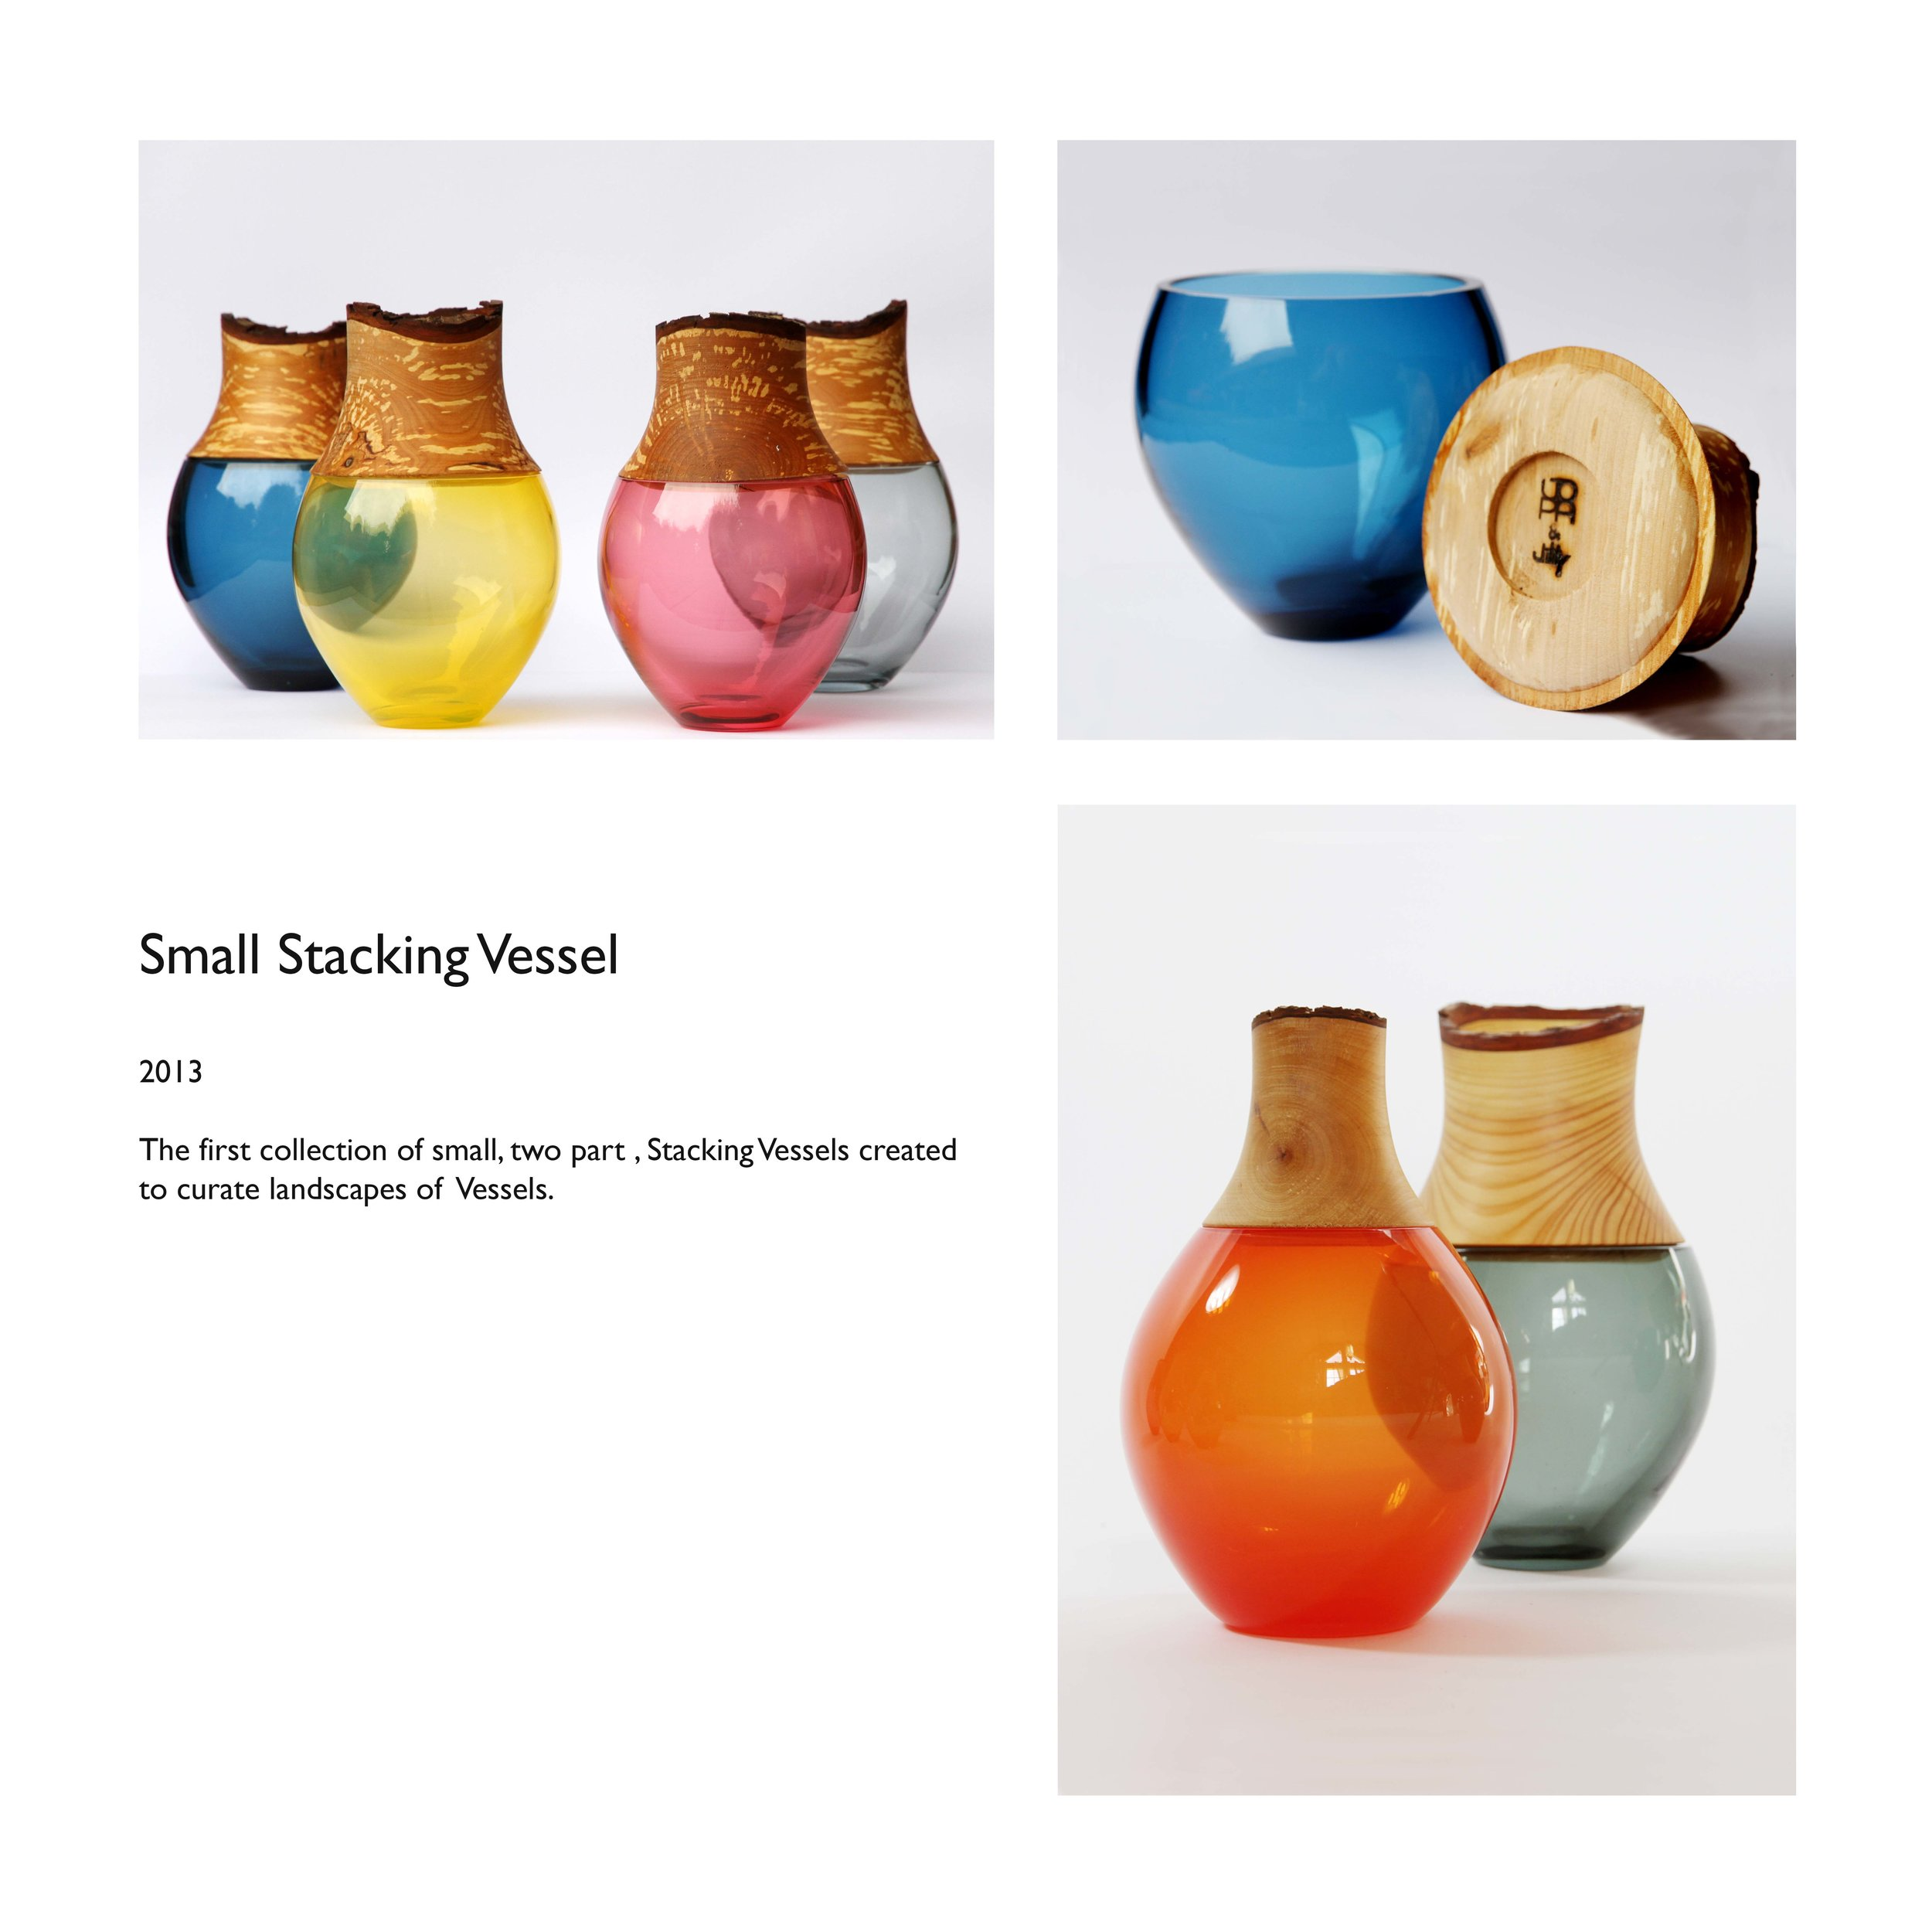 Small Stacking Vessel